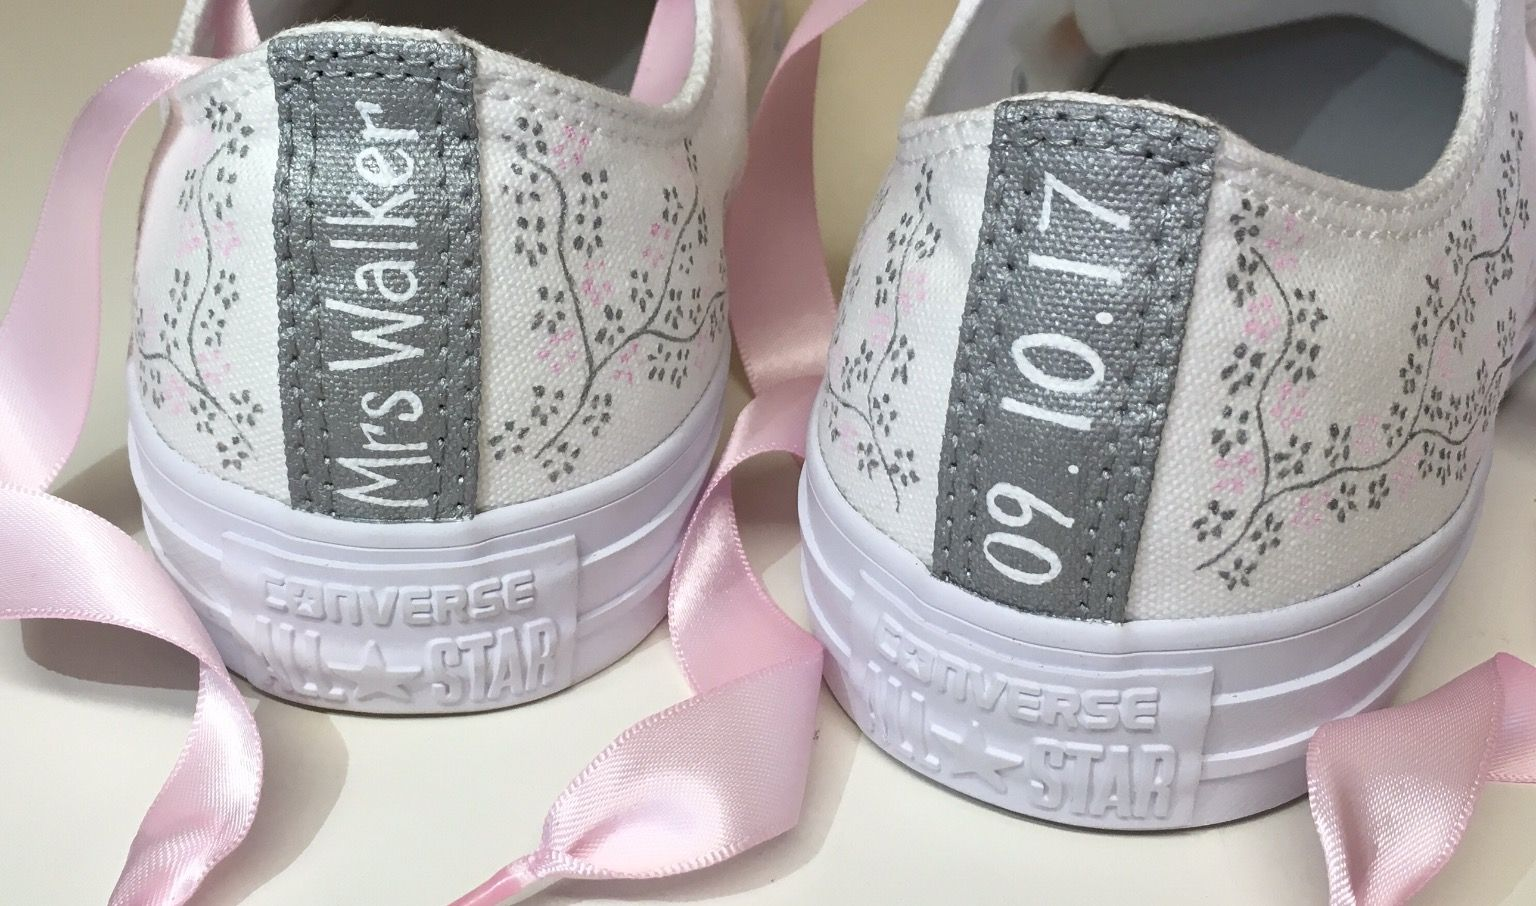 1c2710ad0873 Floral Wedding Converse with Personalised Heel Tags and Light Pink Ribbon  Laces  wedding  fashion  converse  bride  personalised  floral   weddingconverse   ...